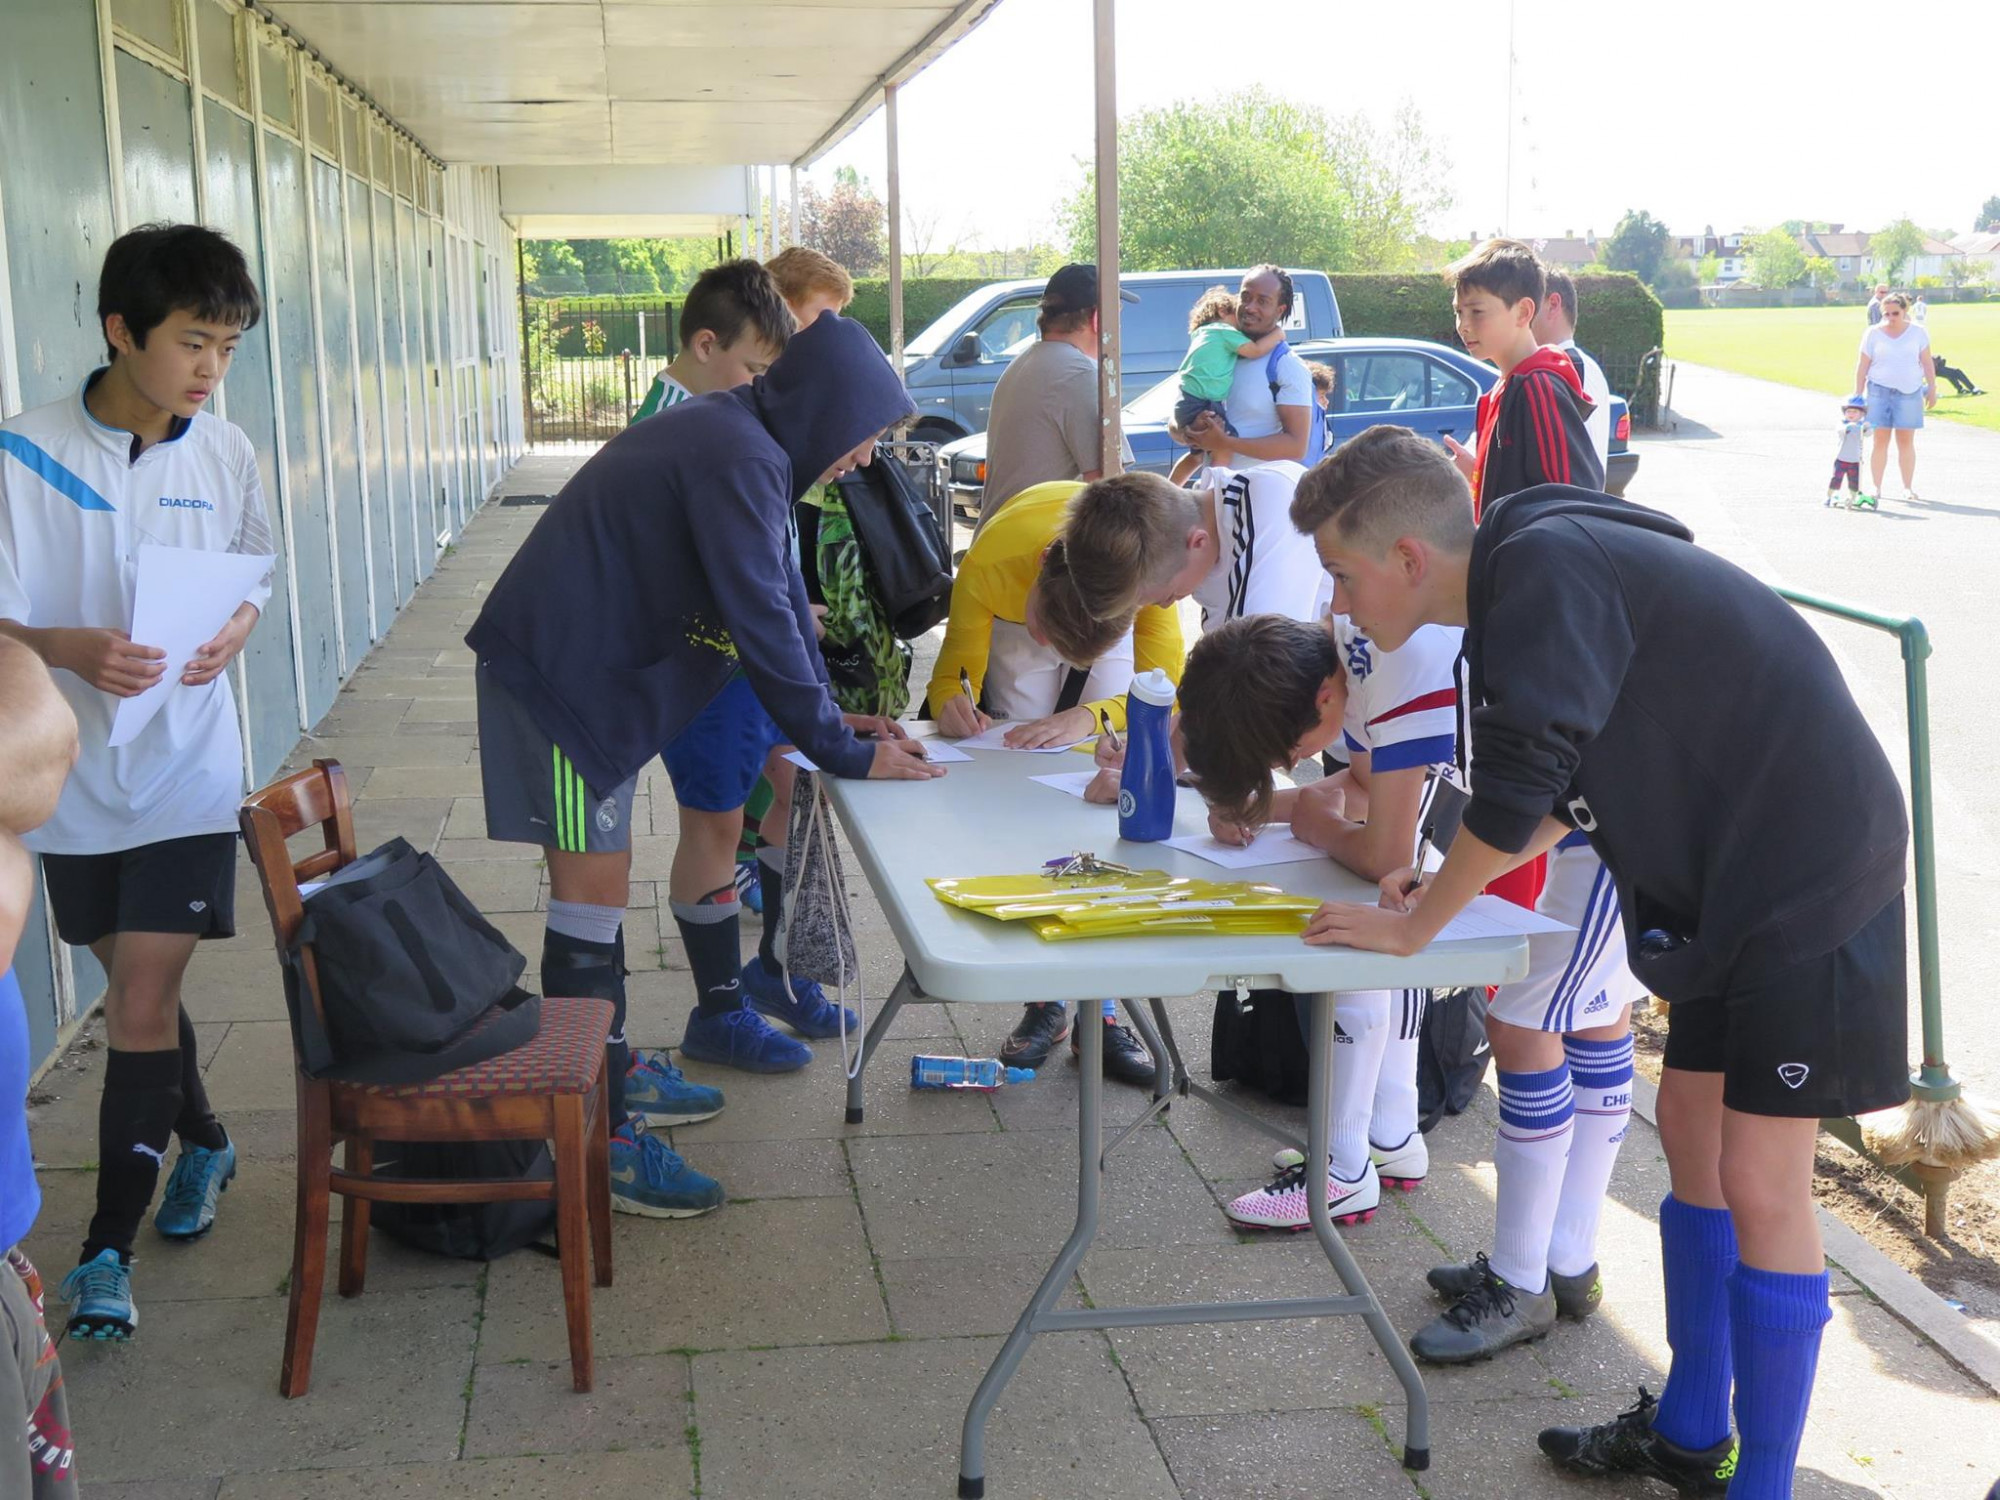 Registration at training -all very well organised